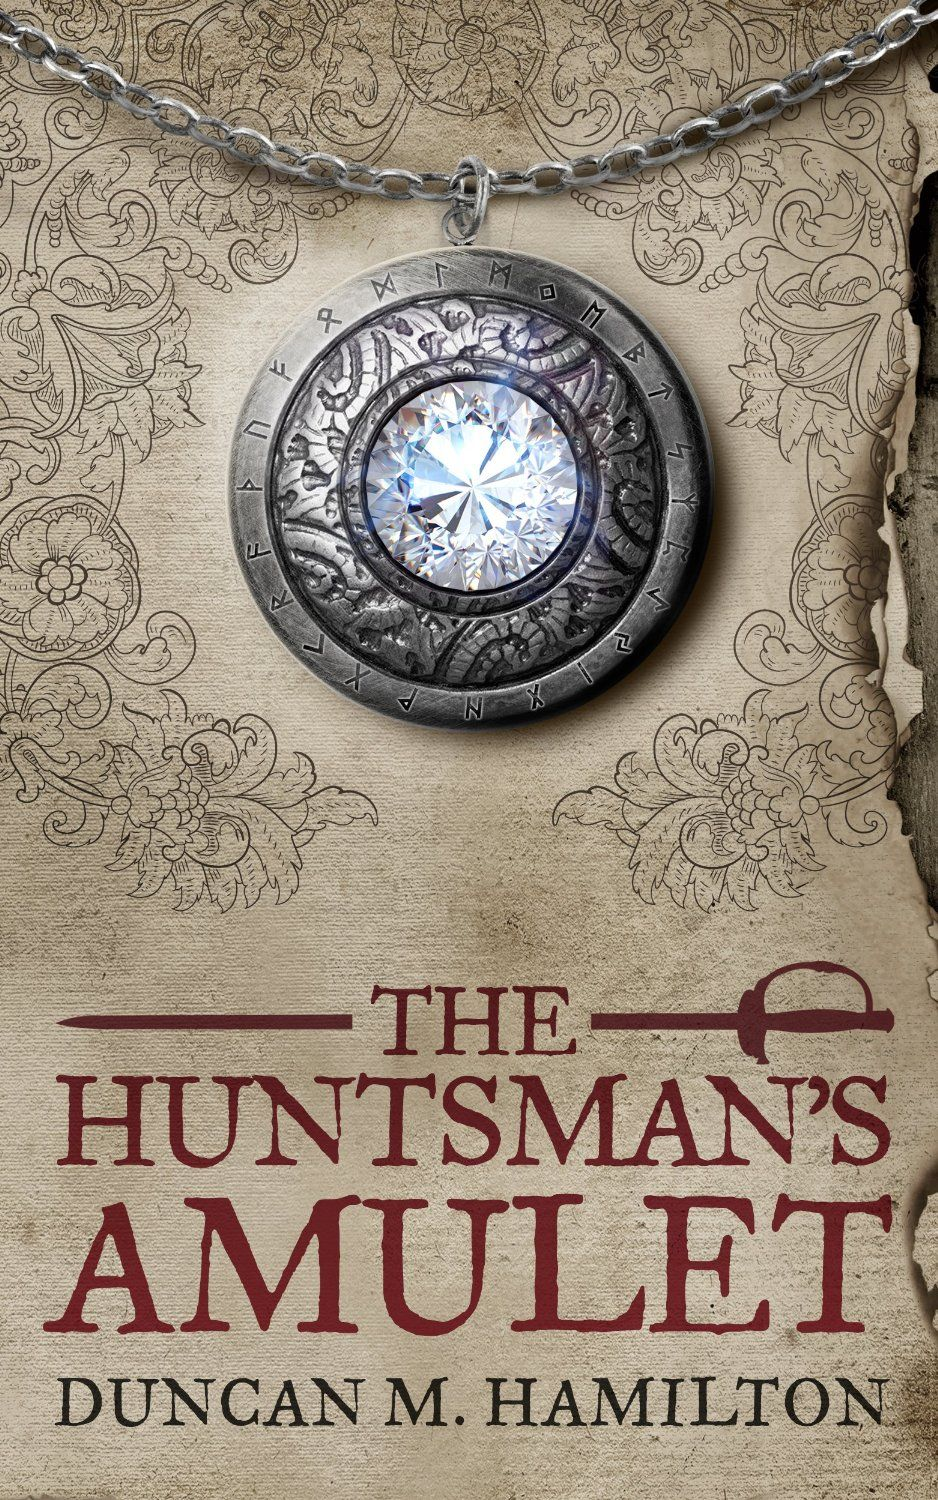 Amazon.com: The Huntsman's Amulet (Society of the Sword Volume 2) eBook: Duncan M. Hamilton: Kindle Store